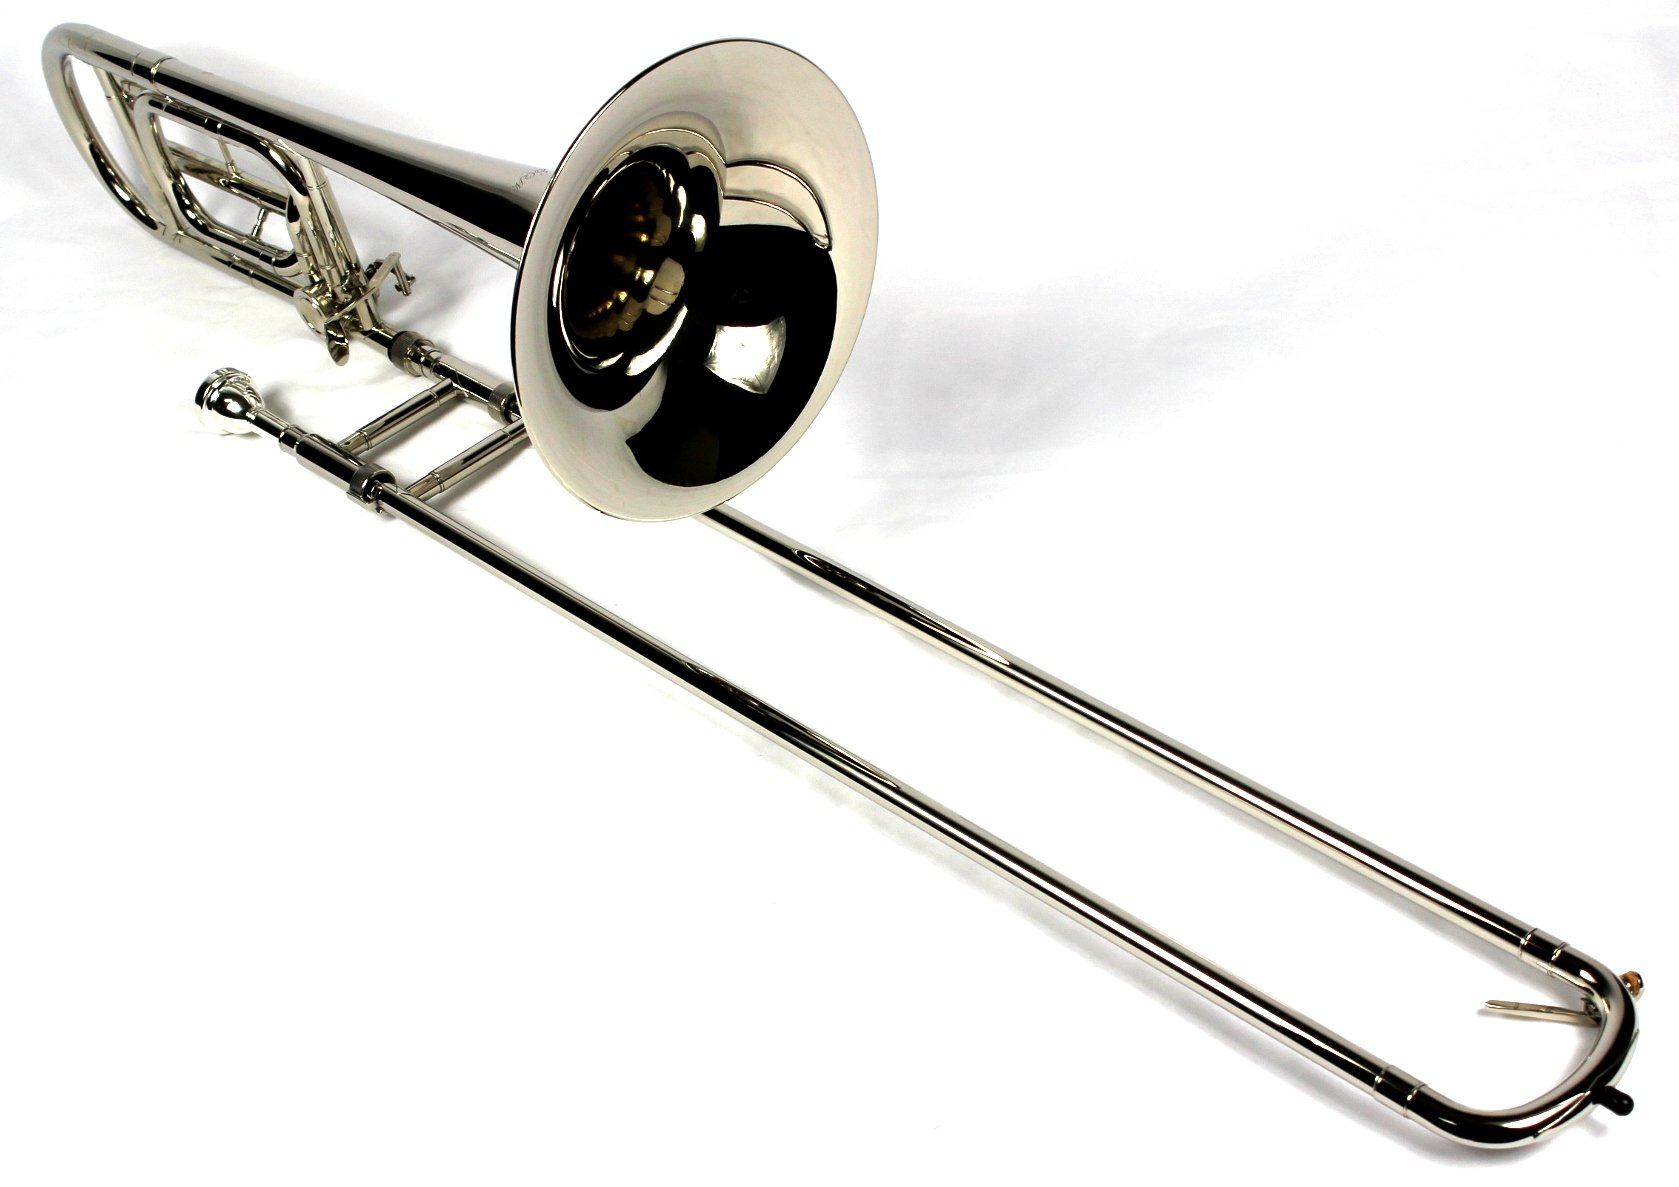 Brand New Bb/F Tenor Trombone w/ Case and Mouthpiece- Nickel Plated Finish by Moz (Image #3)